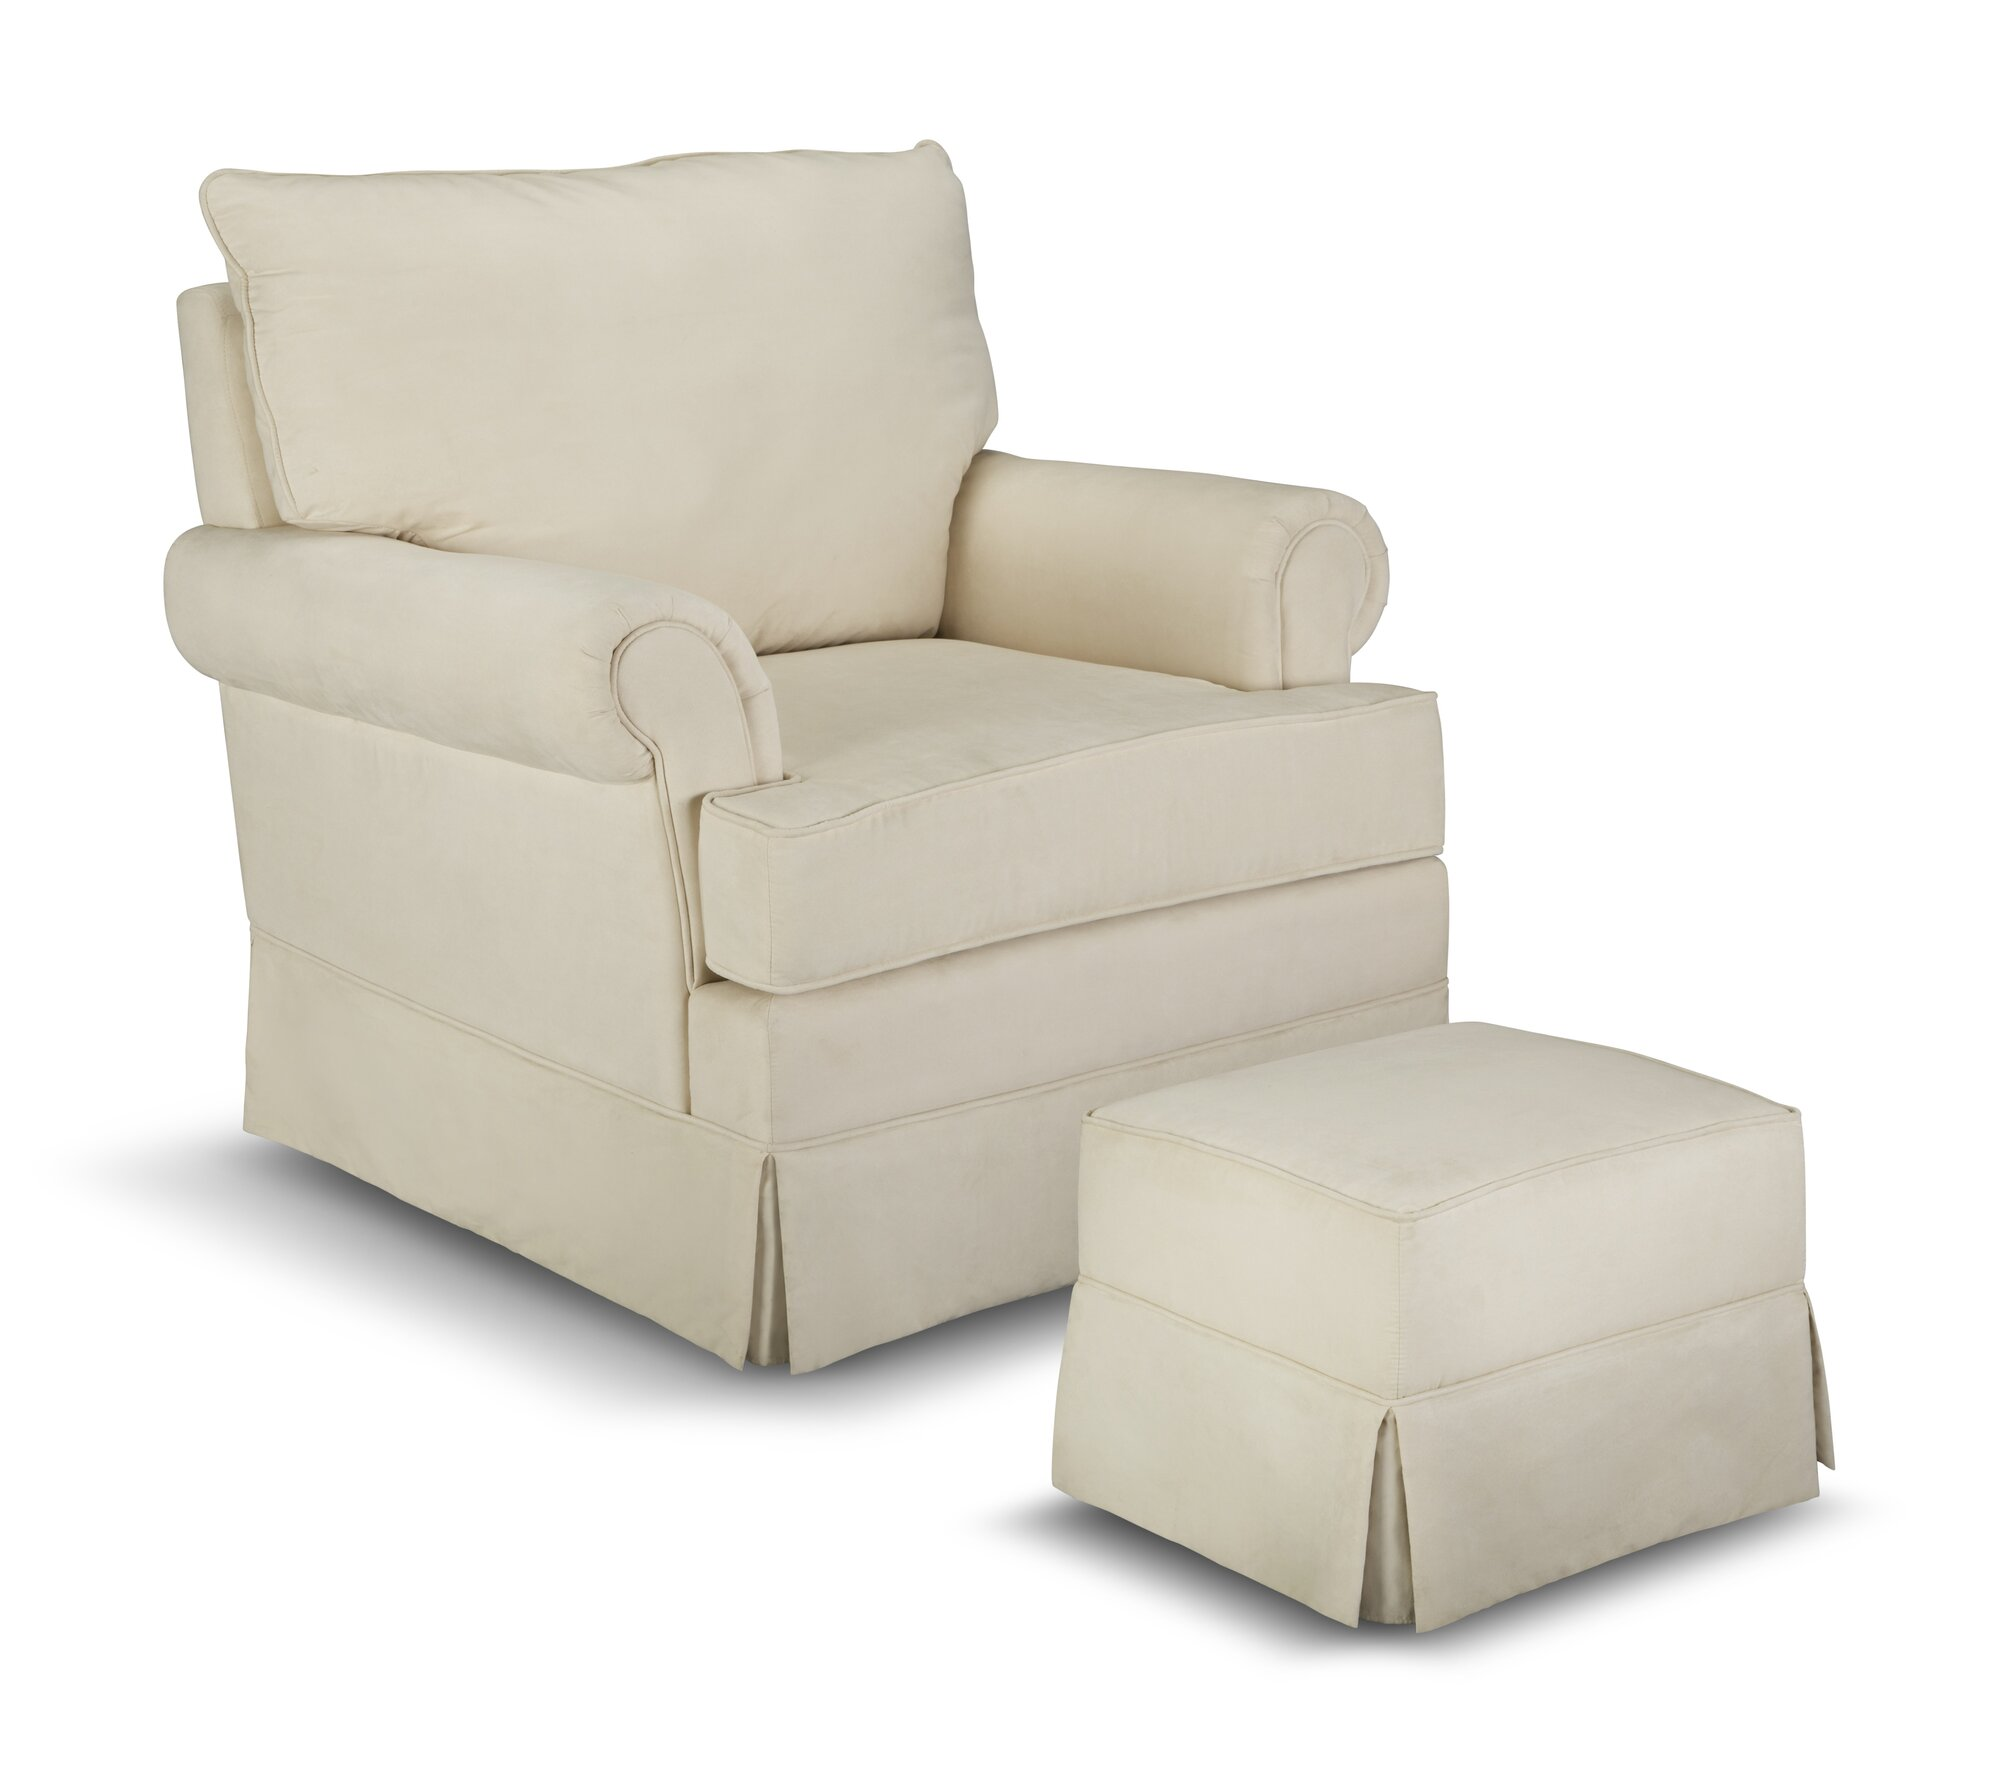 Superb img of  Thomasville Kids Grand Royale Upholstered Swivel Glider & Ottoman with #5C503C color and 2000x1767 pixels